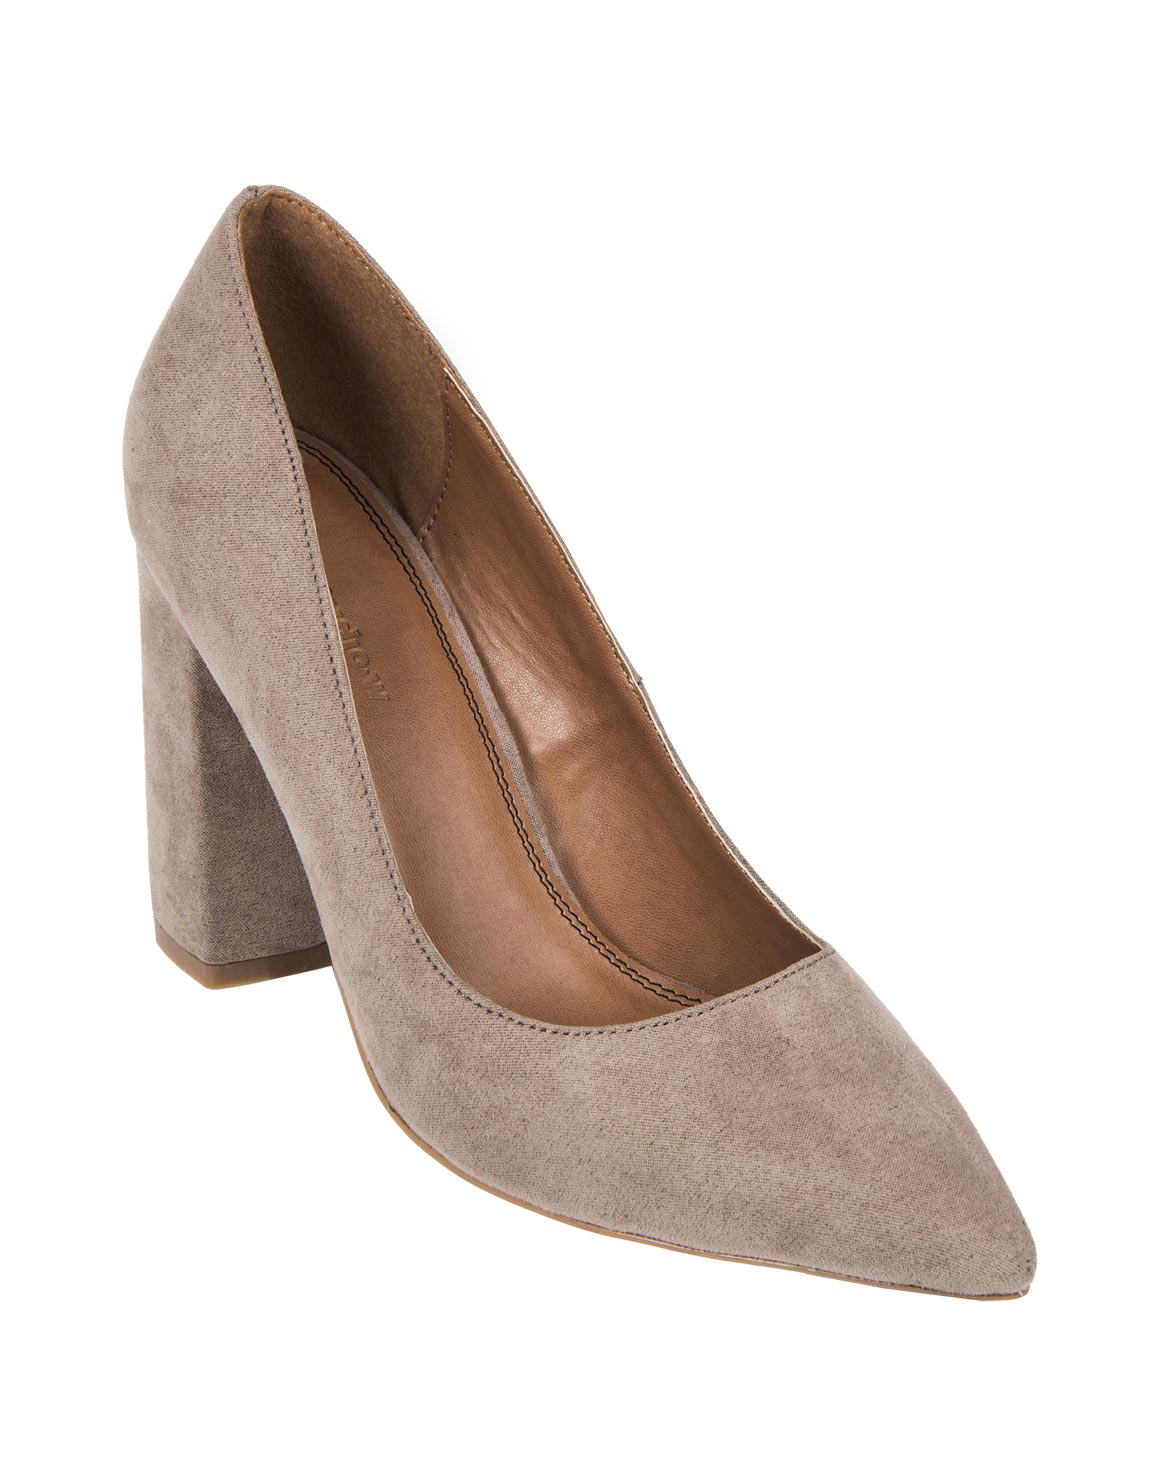 Buy Quality Shoes Online | Woolworths.co.za